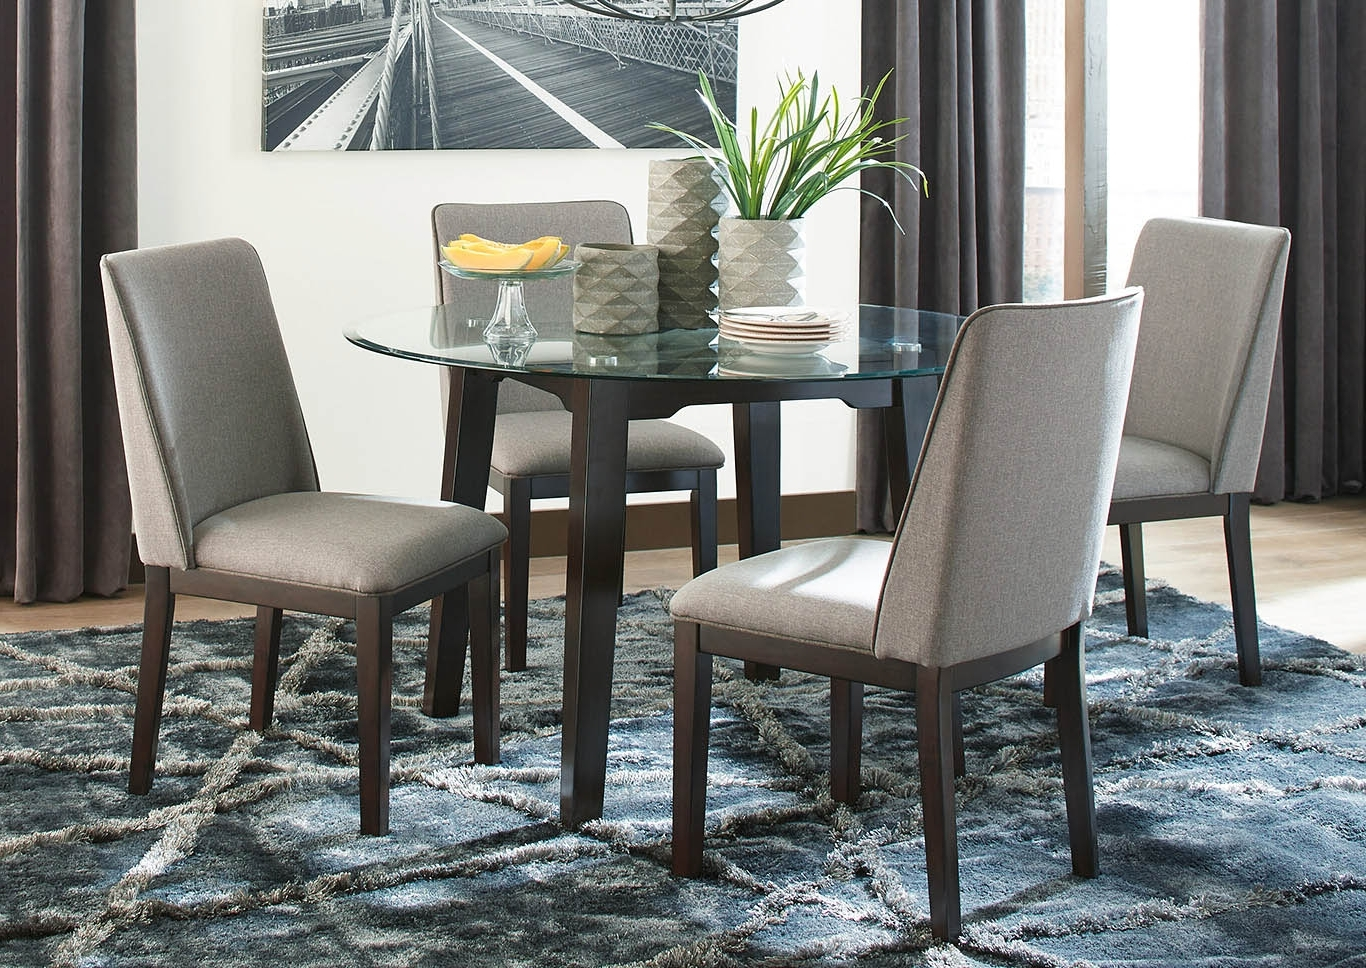 Southside Furniture Chanceen 5 Piece Dining Room Set For Latest Craftsman 5 Piece Round Dining Sets With Side Chairs (View 20 of 25)